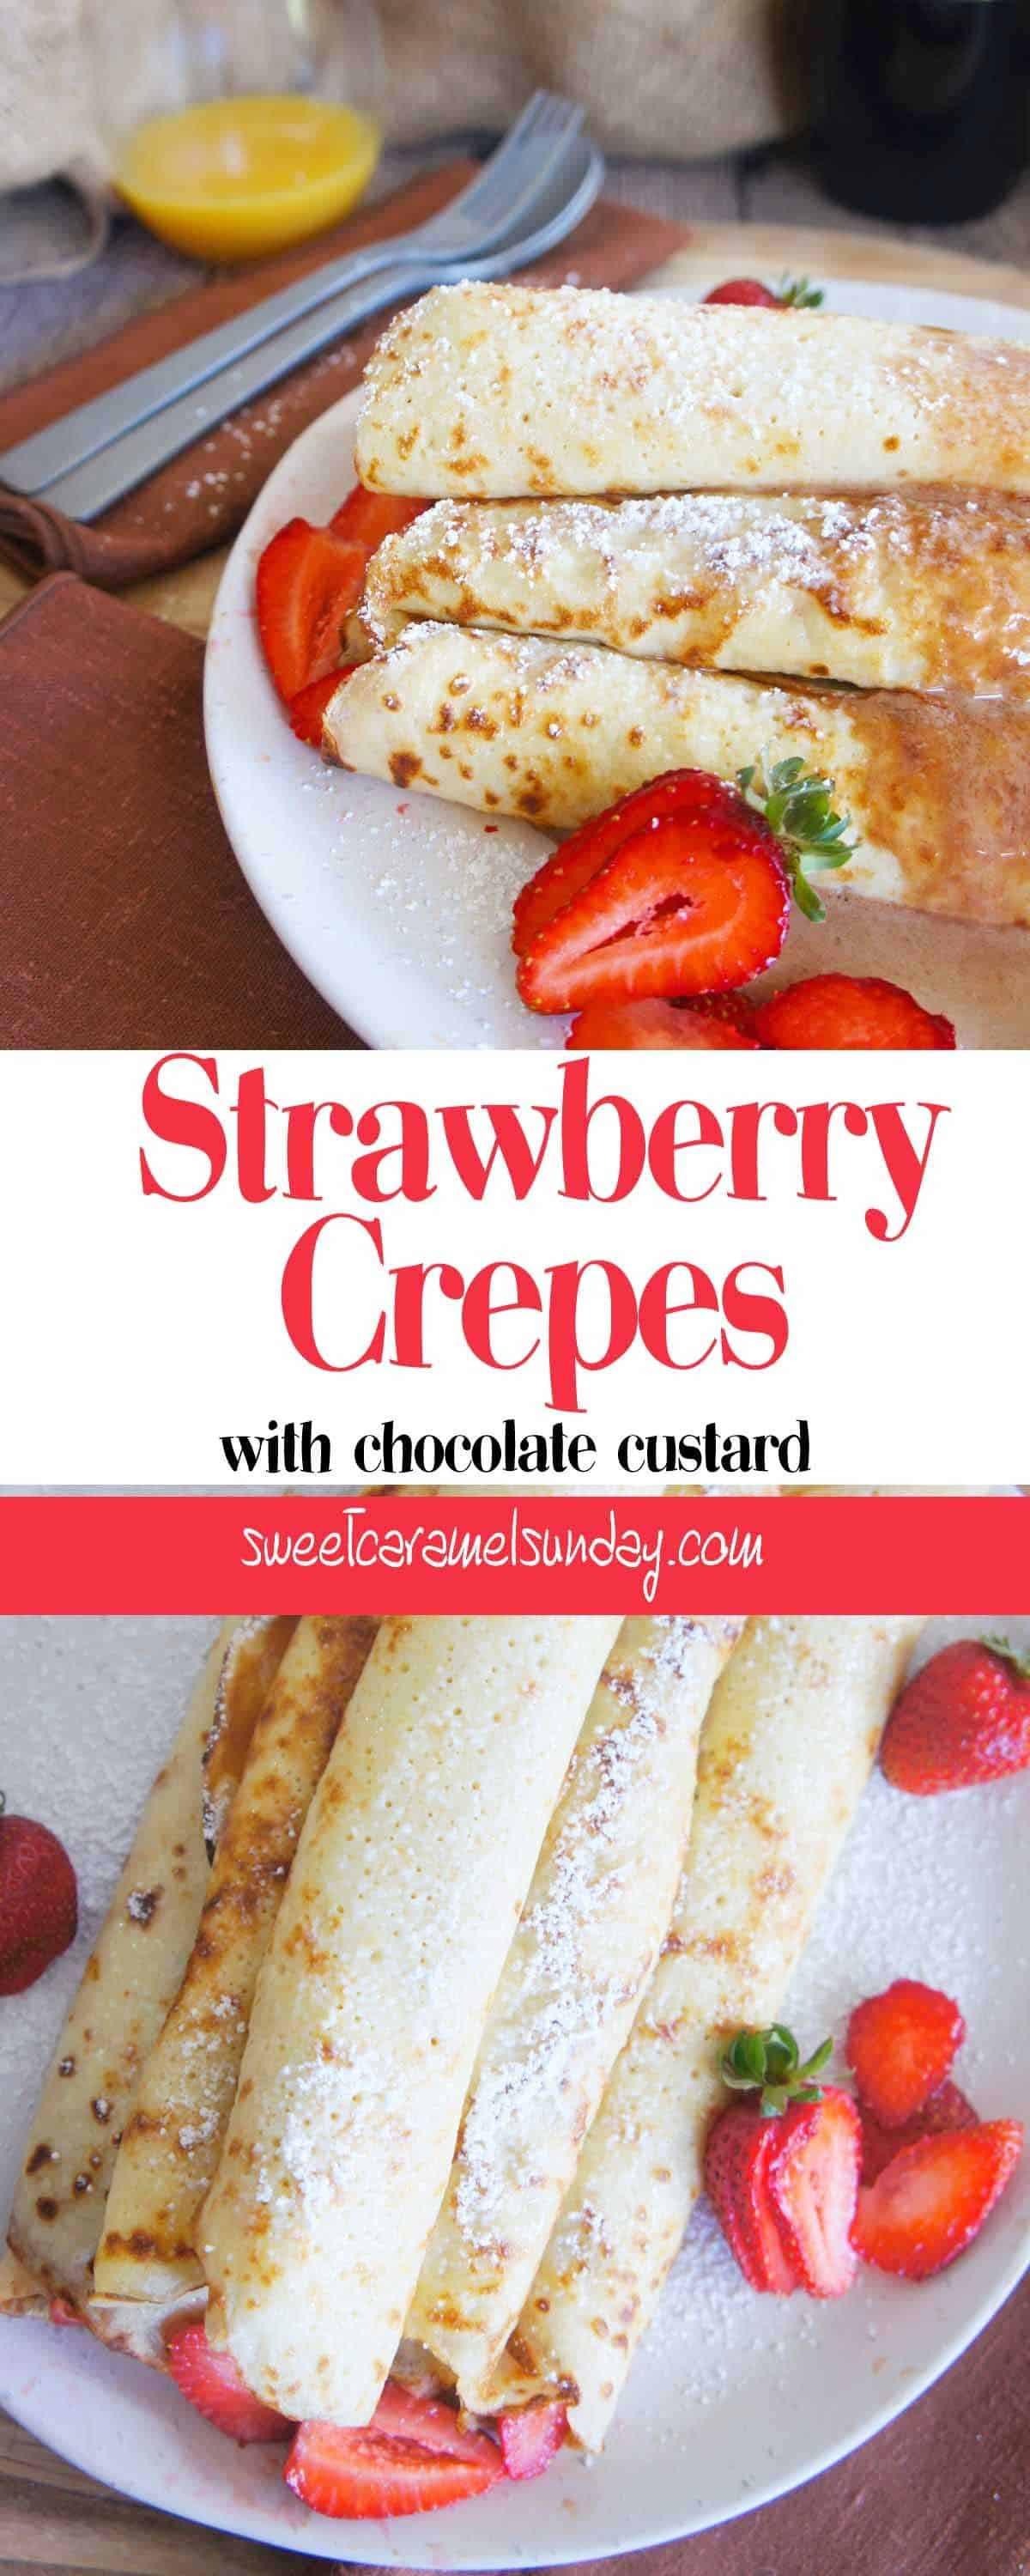 Strawberry crepes on a white plate with text overlay